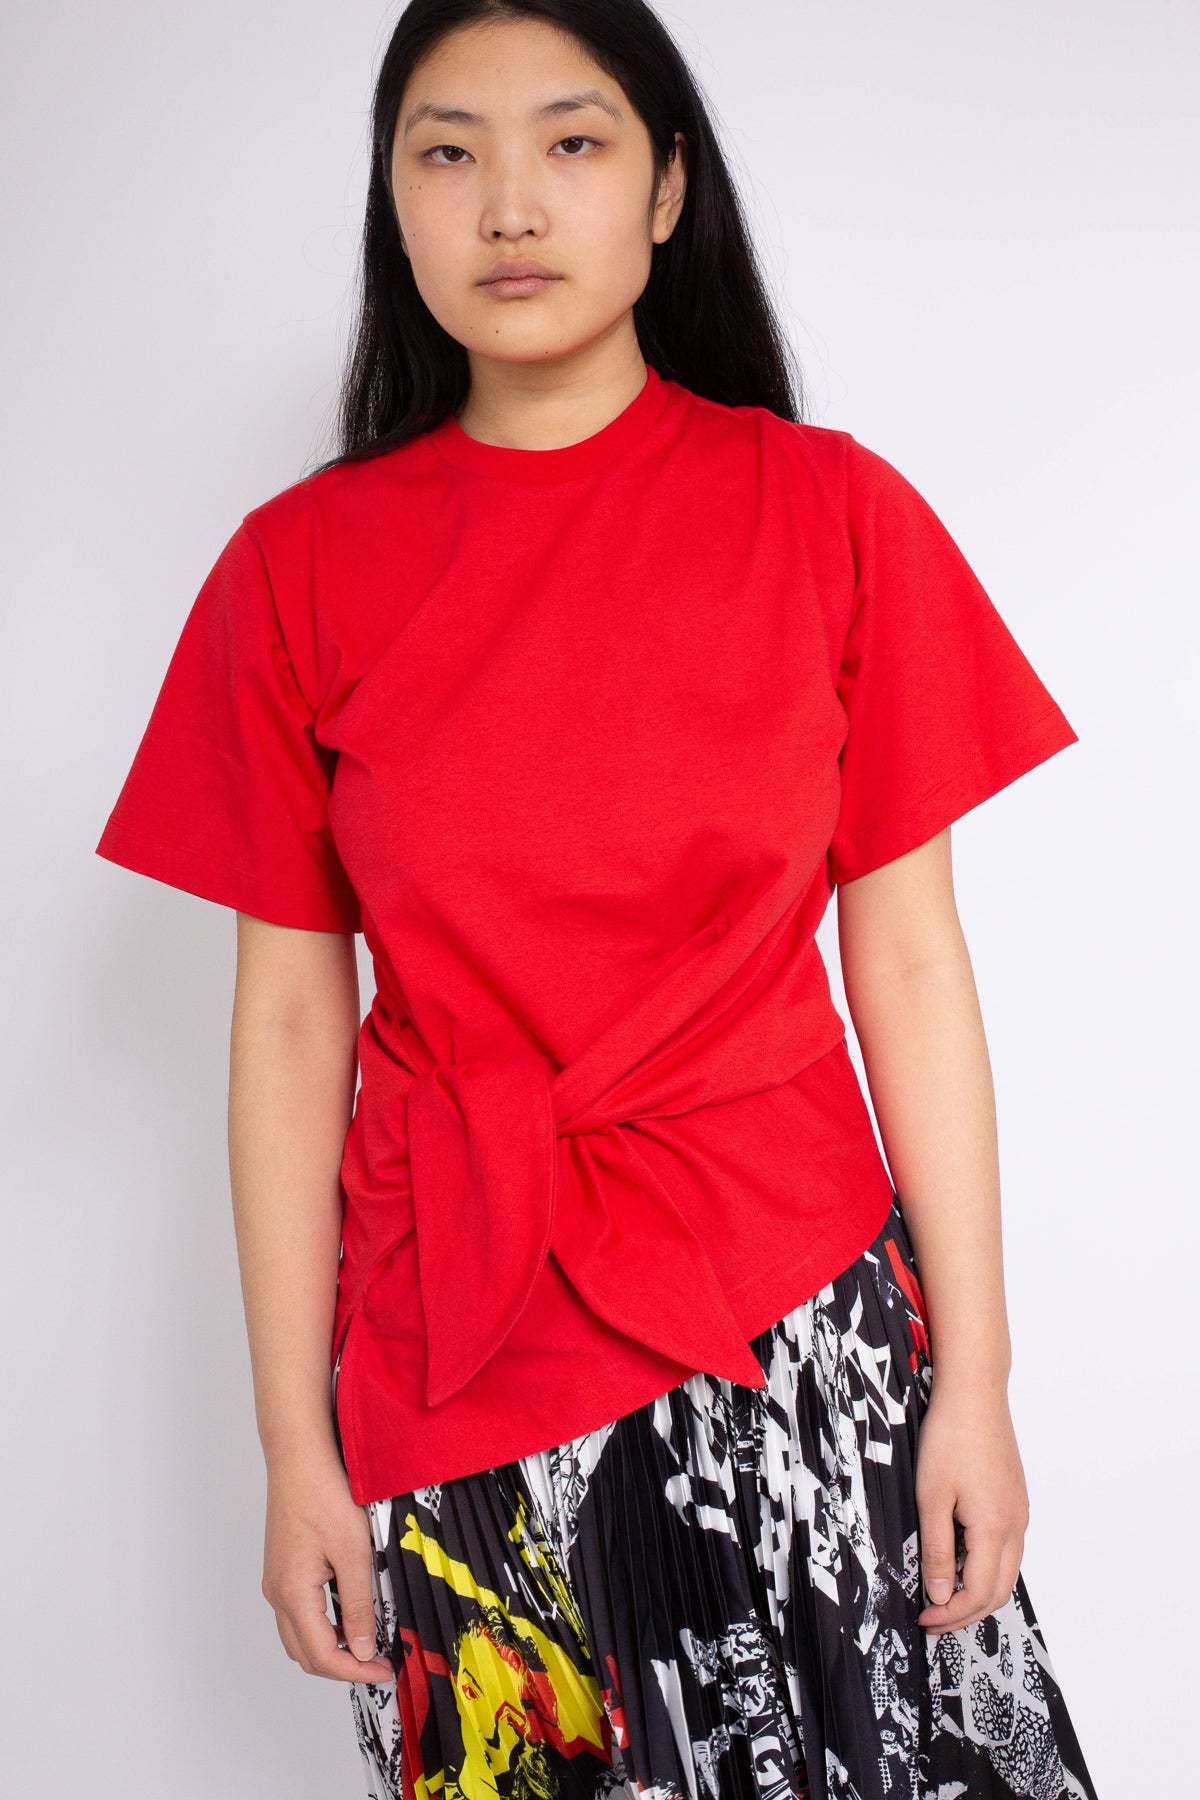 KNOT T-SHIRT IN RED